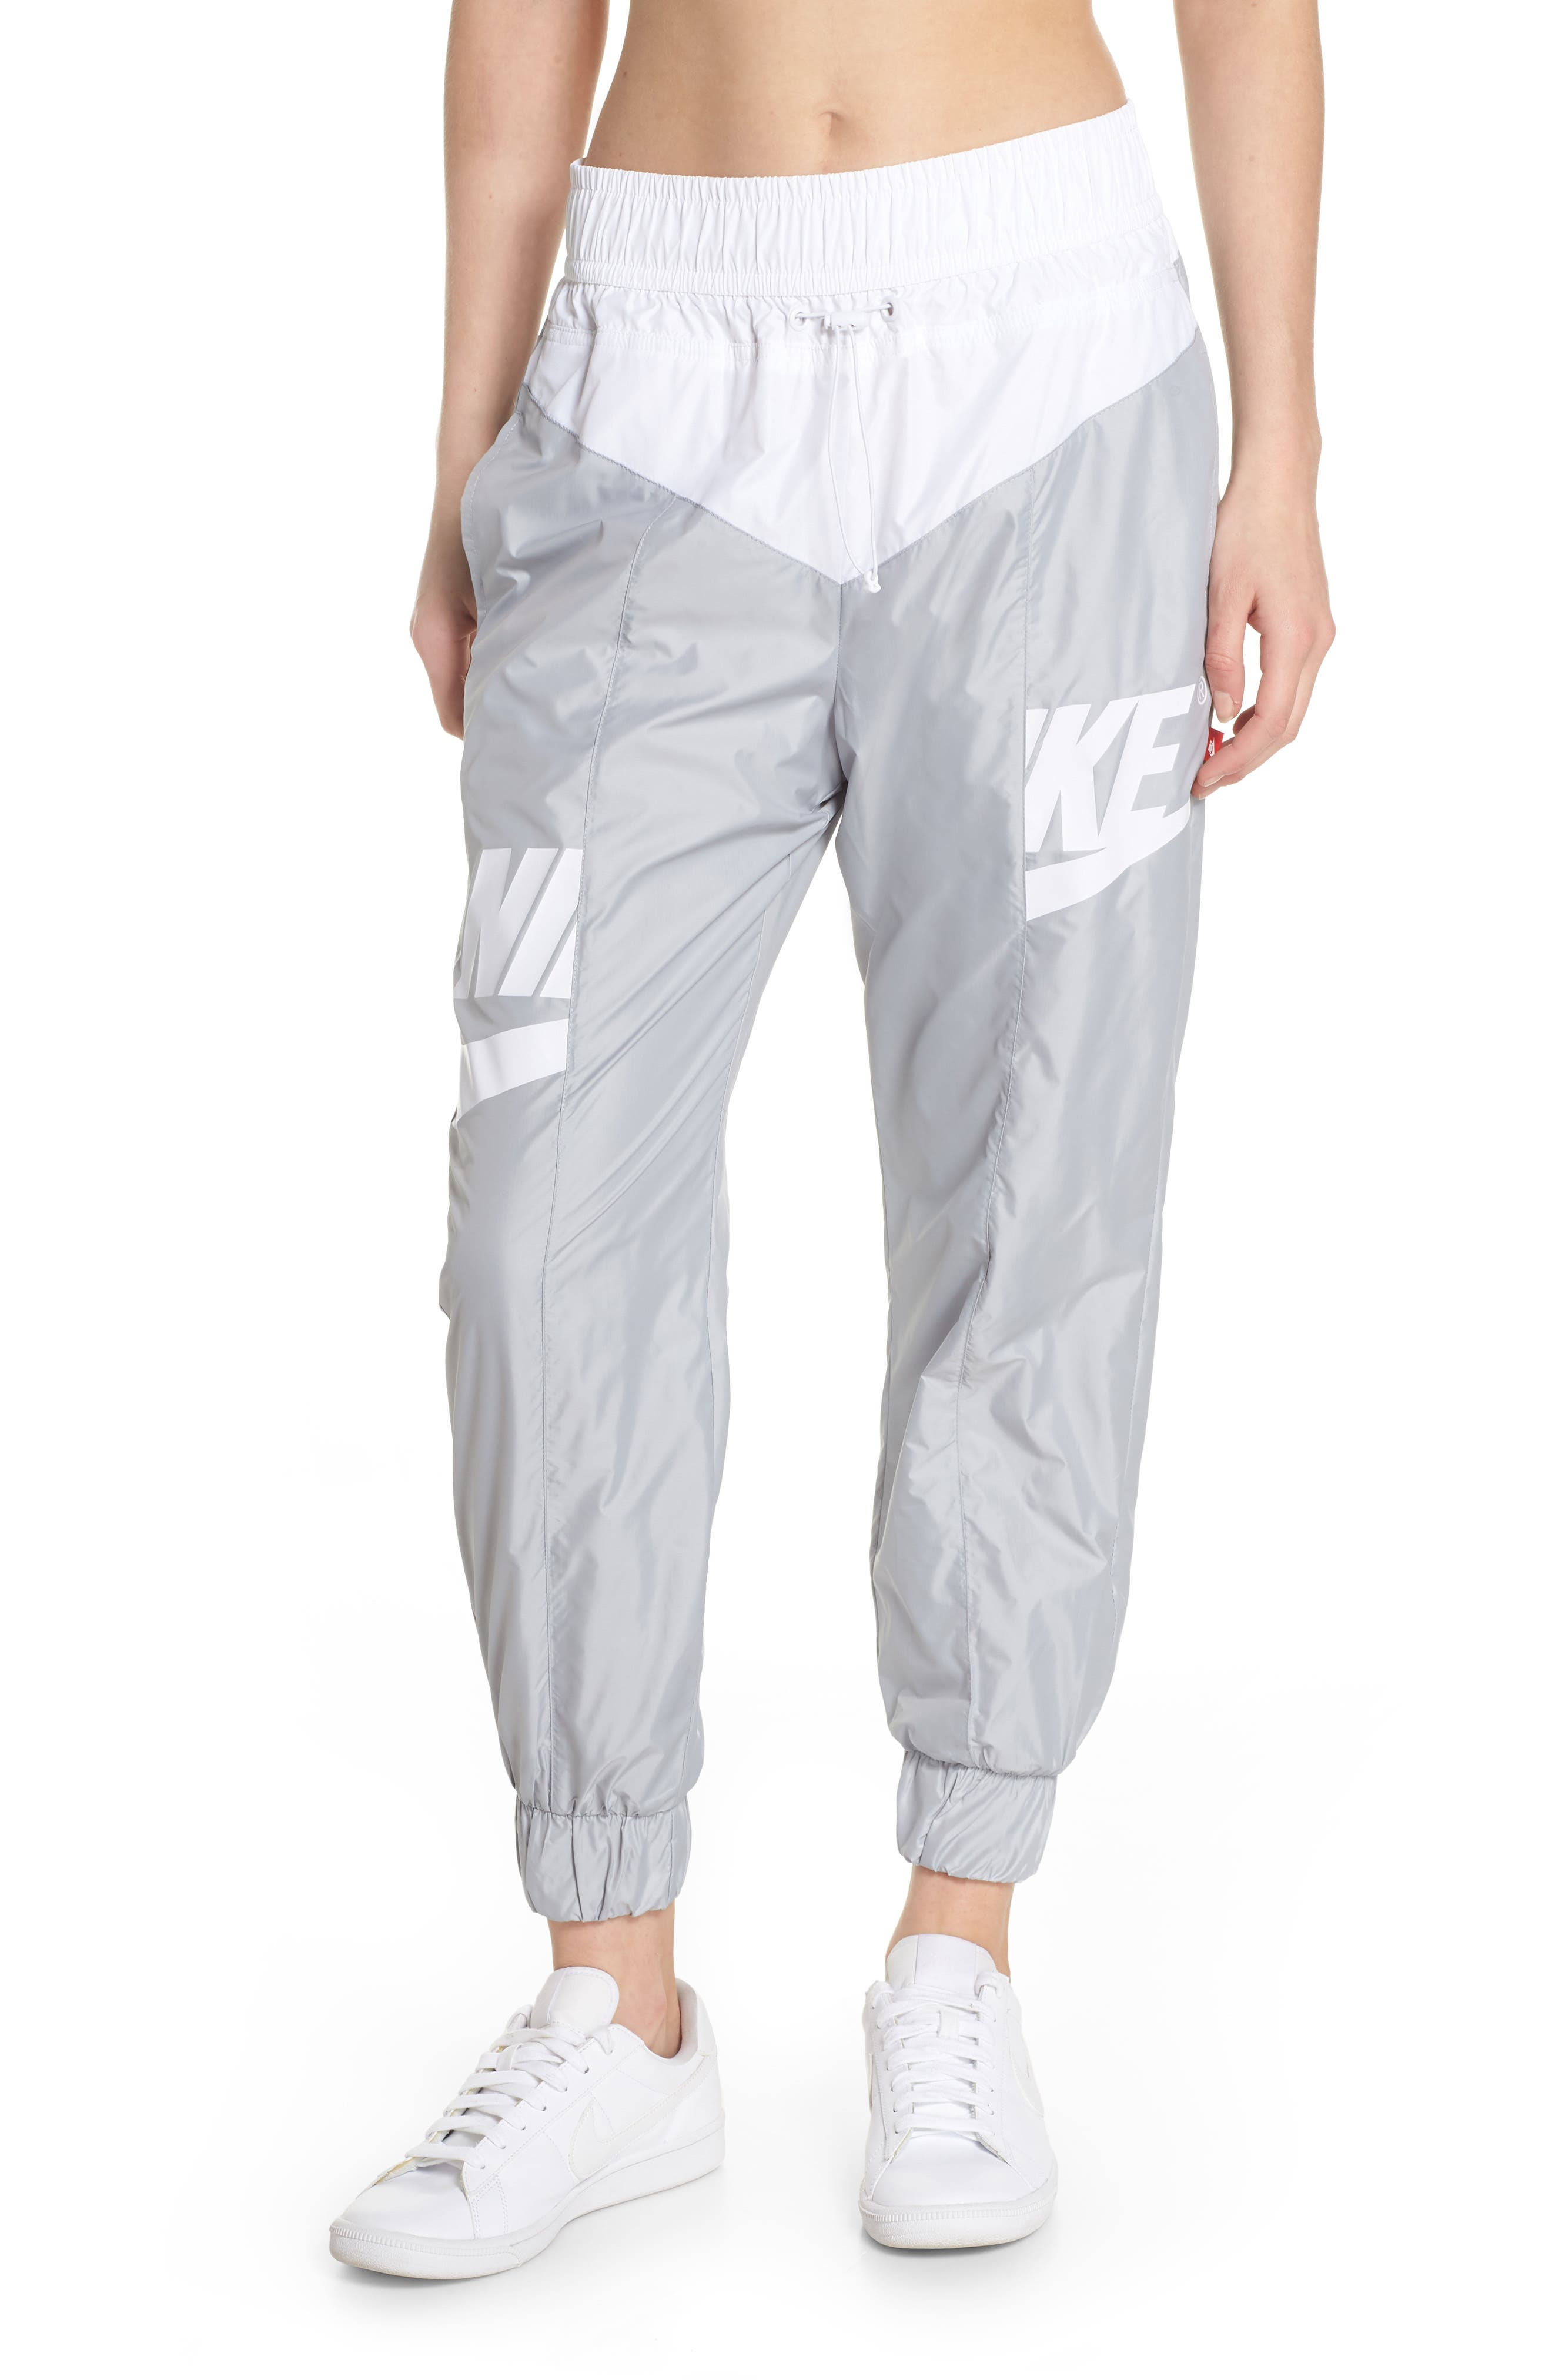 Sportswear Windrunner pants,                         Main,                         color, 020